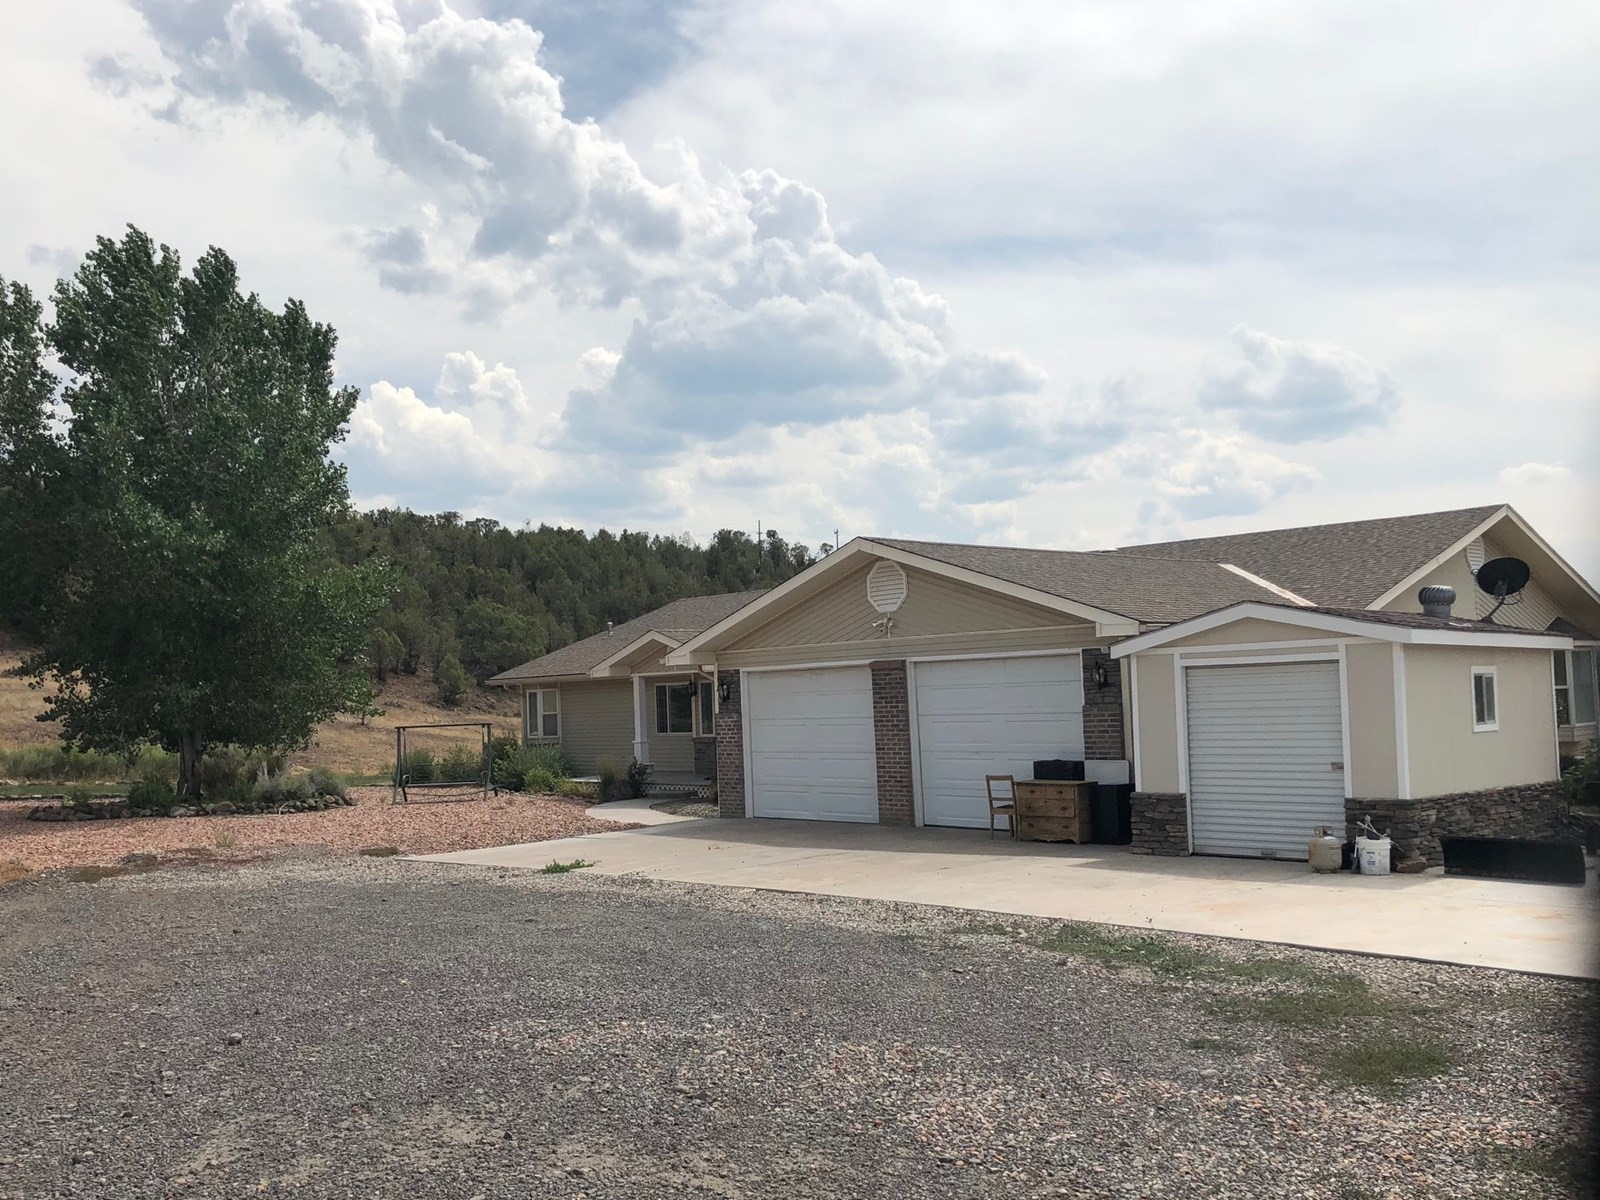 35 Acres w/Home, Creek side additional guest home for sale